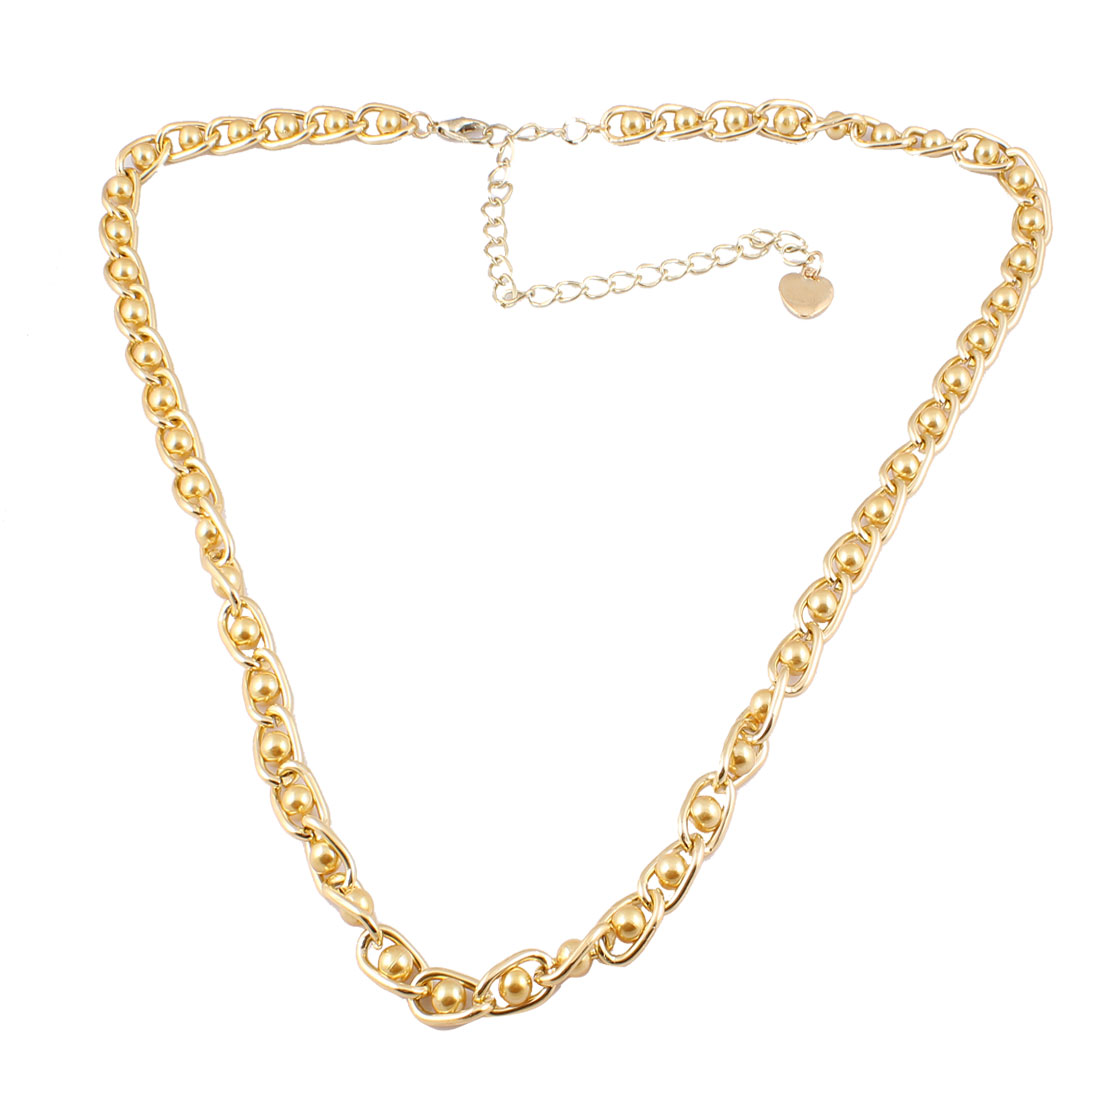 Metallic Gold Tone Imitation Pearl Detail Heart Pendent Curbchain Waist Chain for Lady